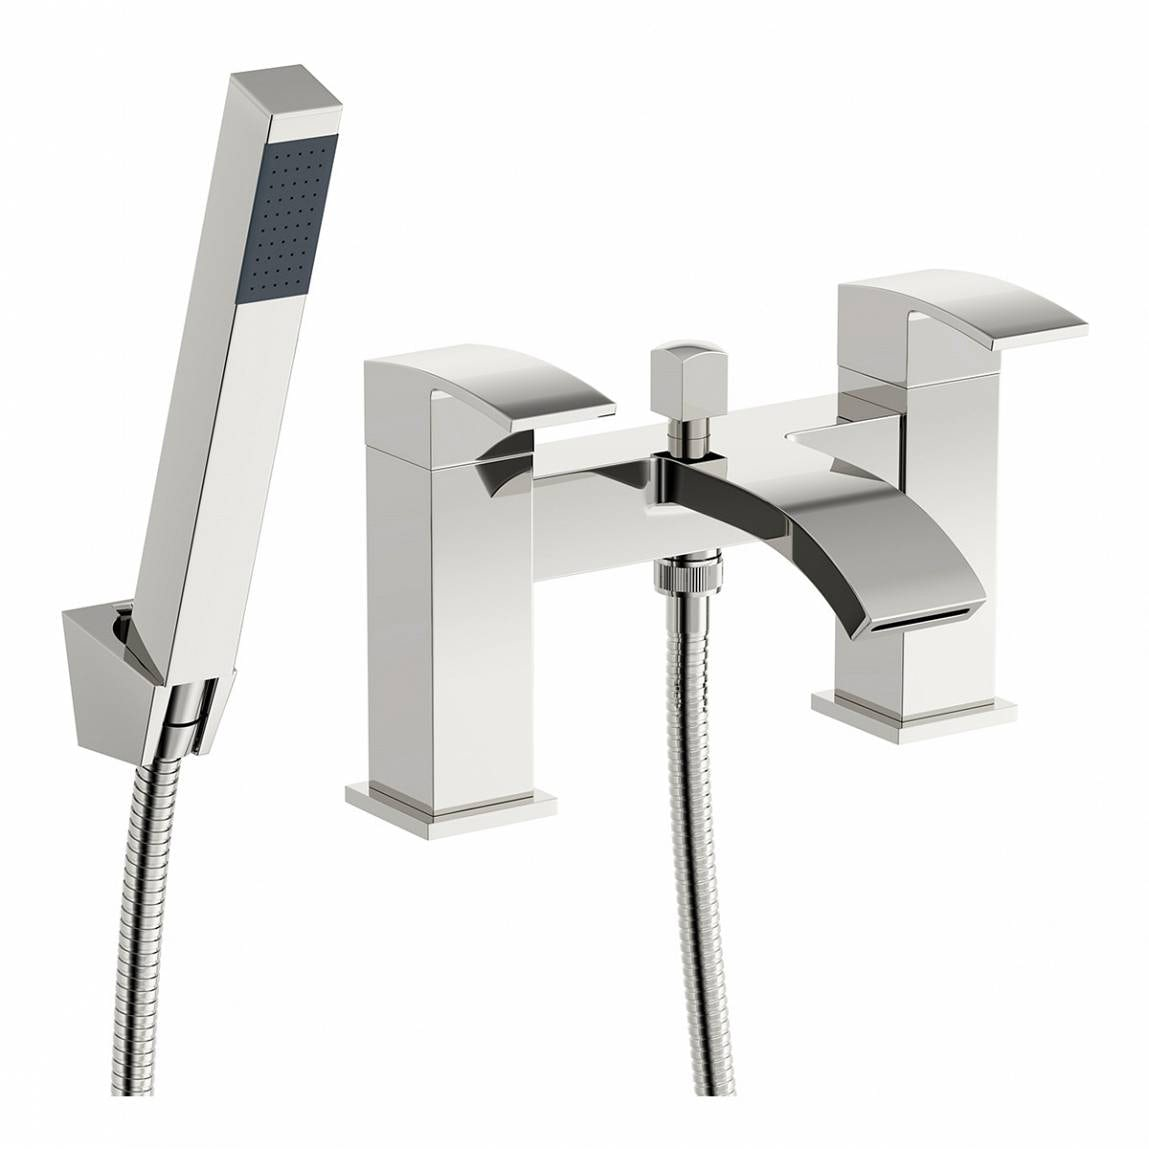 Orchard Wye bath shower mixer tap offer pack